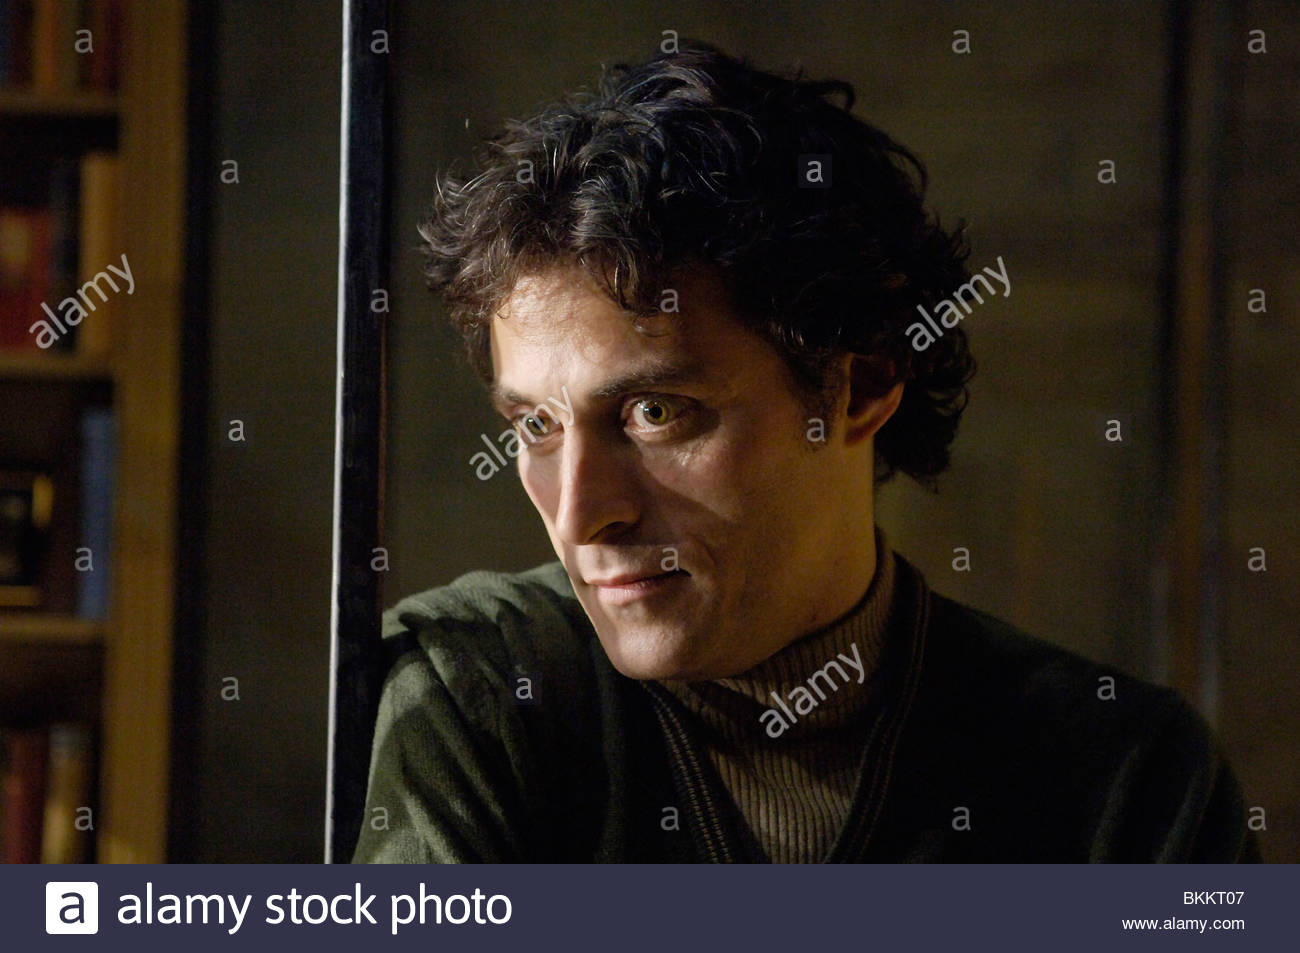 Rock 'n' Roll by Tom Stoppard,directed by Trevor Nunn. - Stock Image